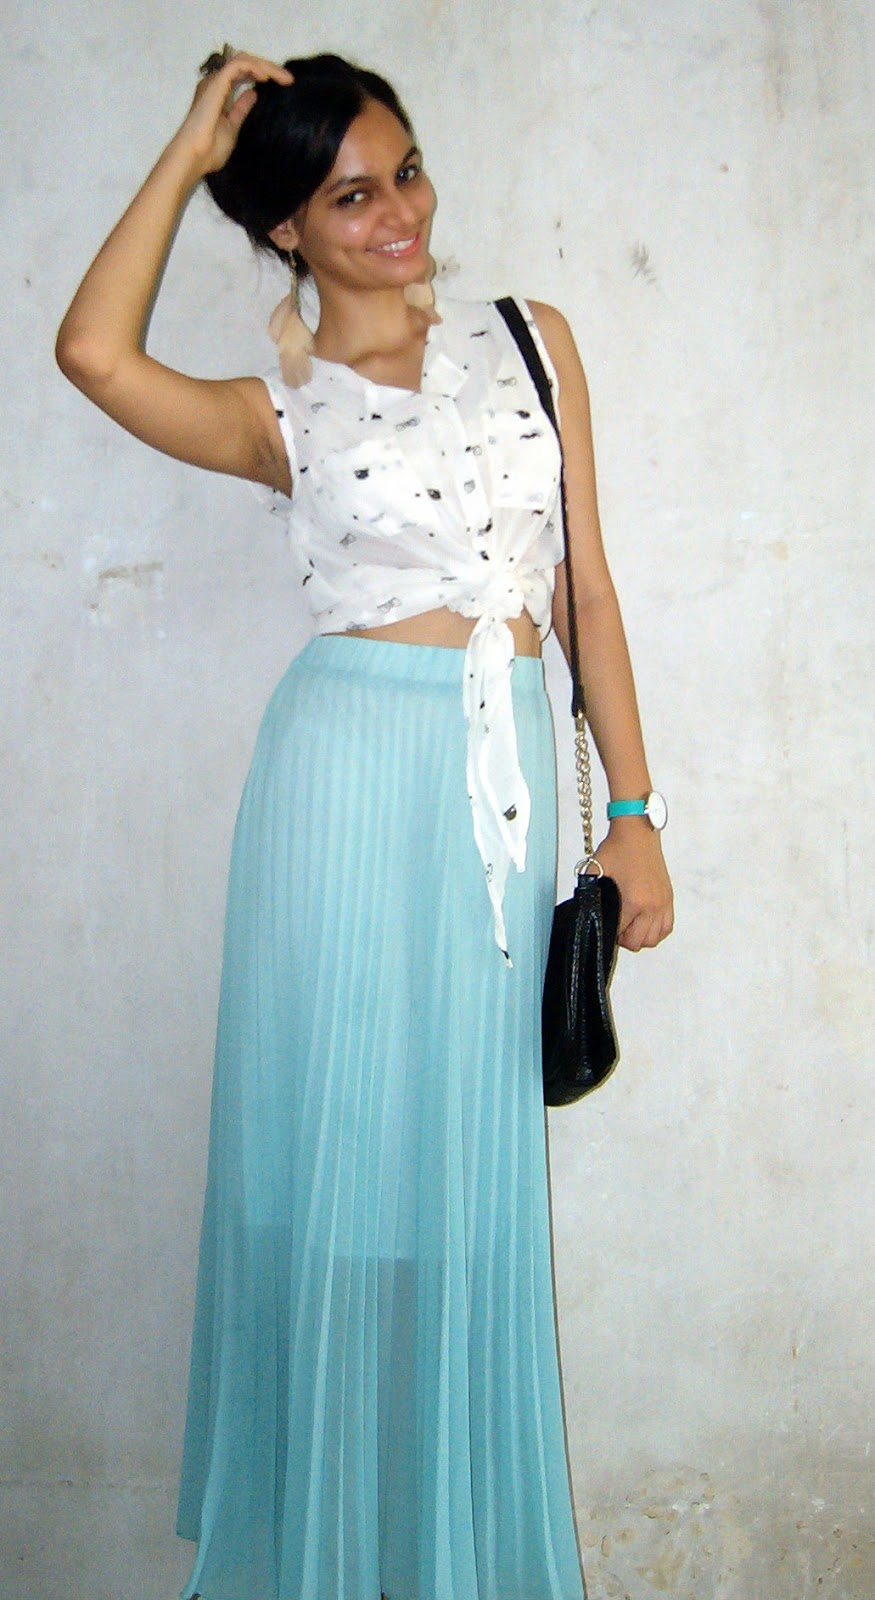 pleated skirt, maxi skirt, sea grean skirt, mumbai streetstyle, online shopping, indian fashion blogger, mumbai fashion blog, bohemian style